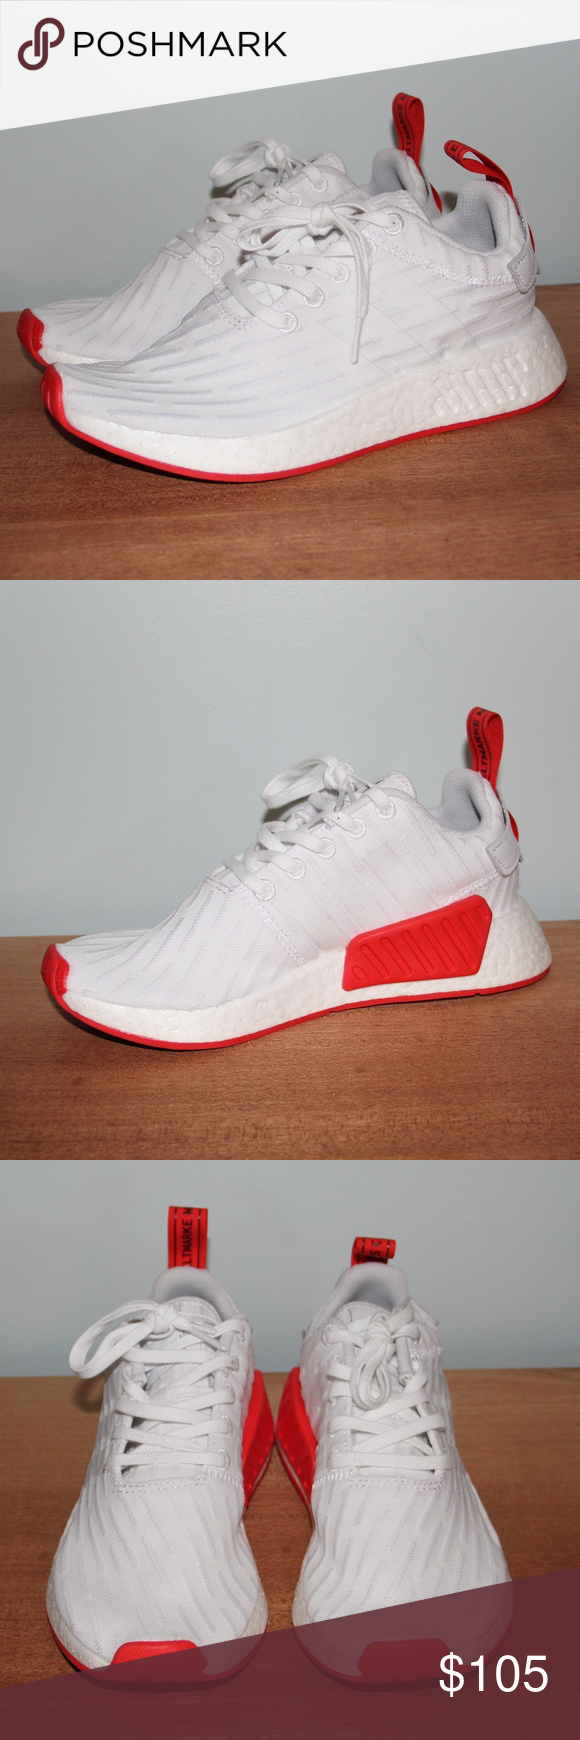 8d935ad3b9c21 NWOB Adidas NMD R2 PK Primeknit White Red 5.5 Brand new without box Men s  size 5.5